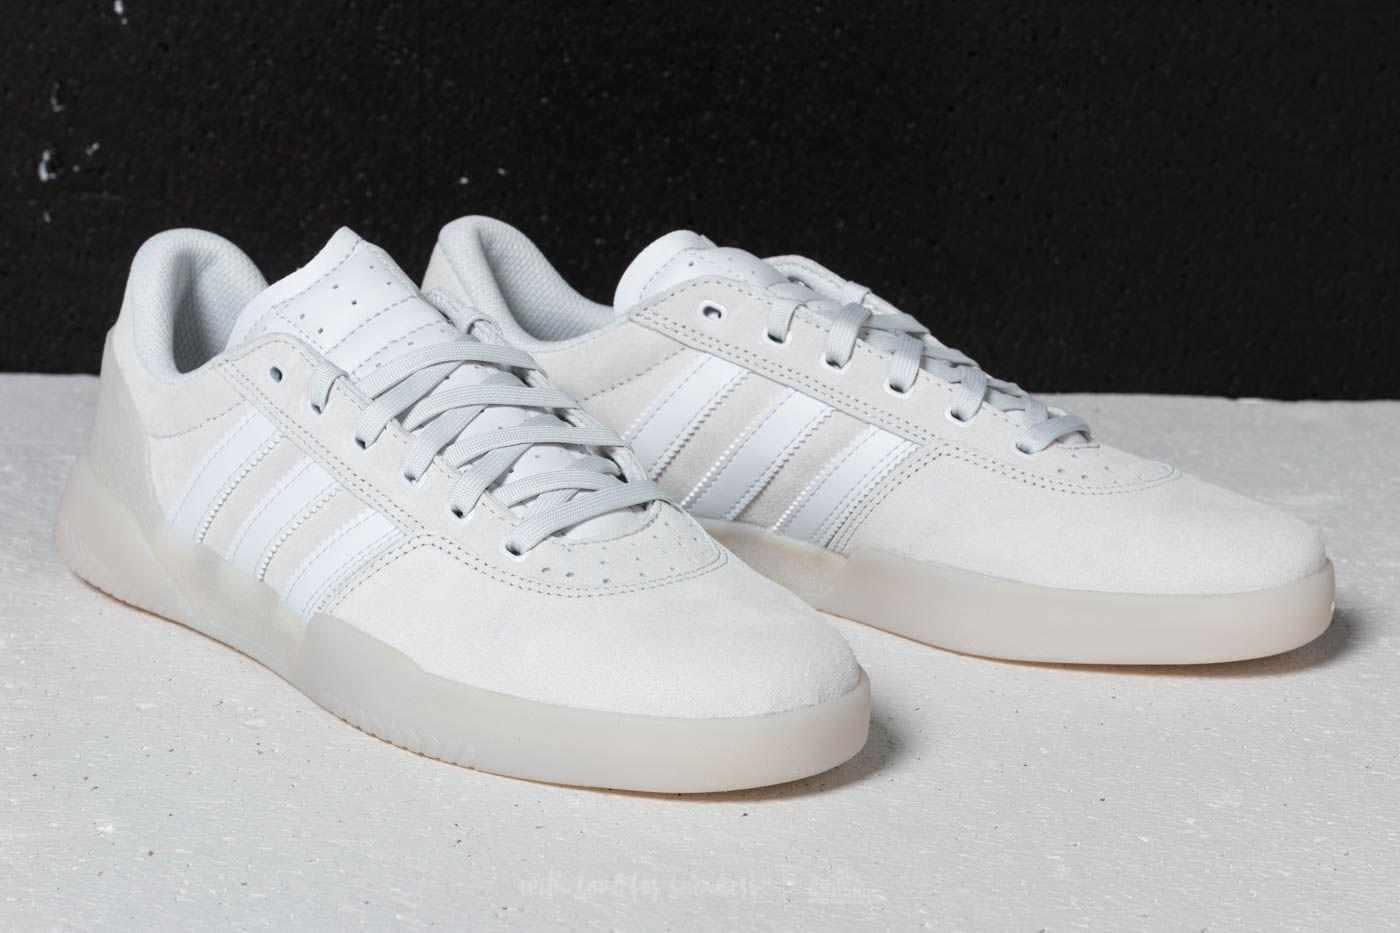 9ee8923a413845 Lyst - adidas Originals Adidas City Cup Crystal White  Crystal White ...